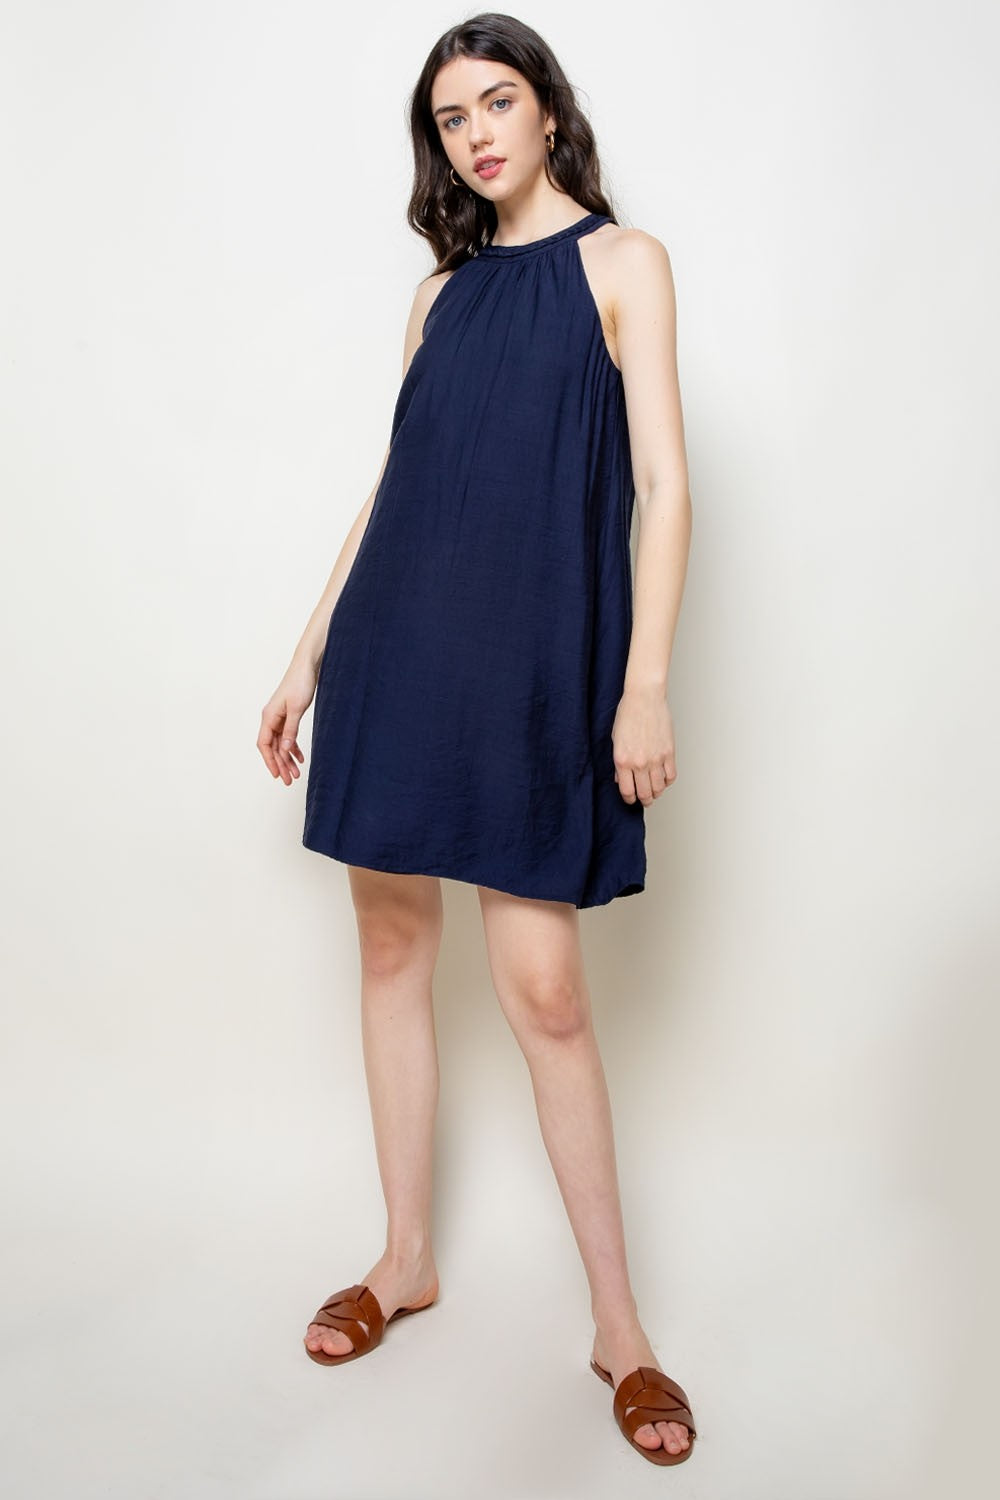 Braided Halter Neck Dress in Navy